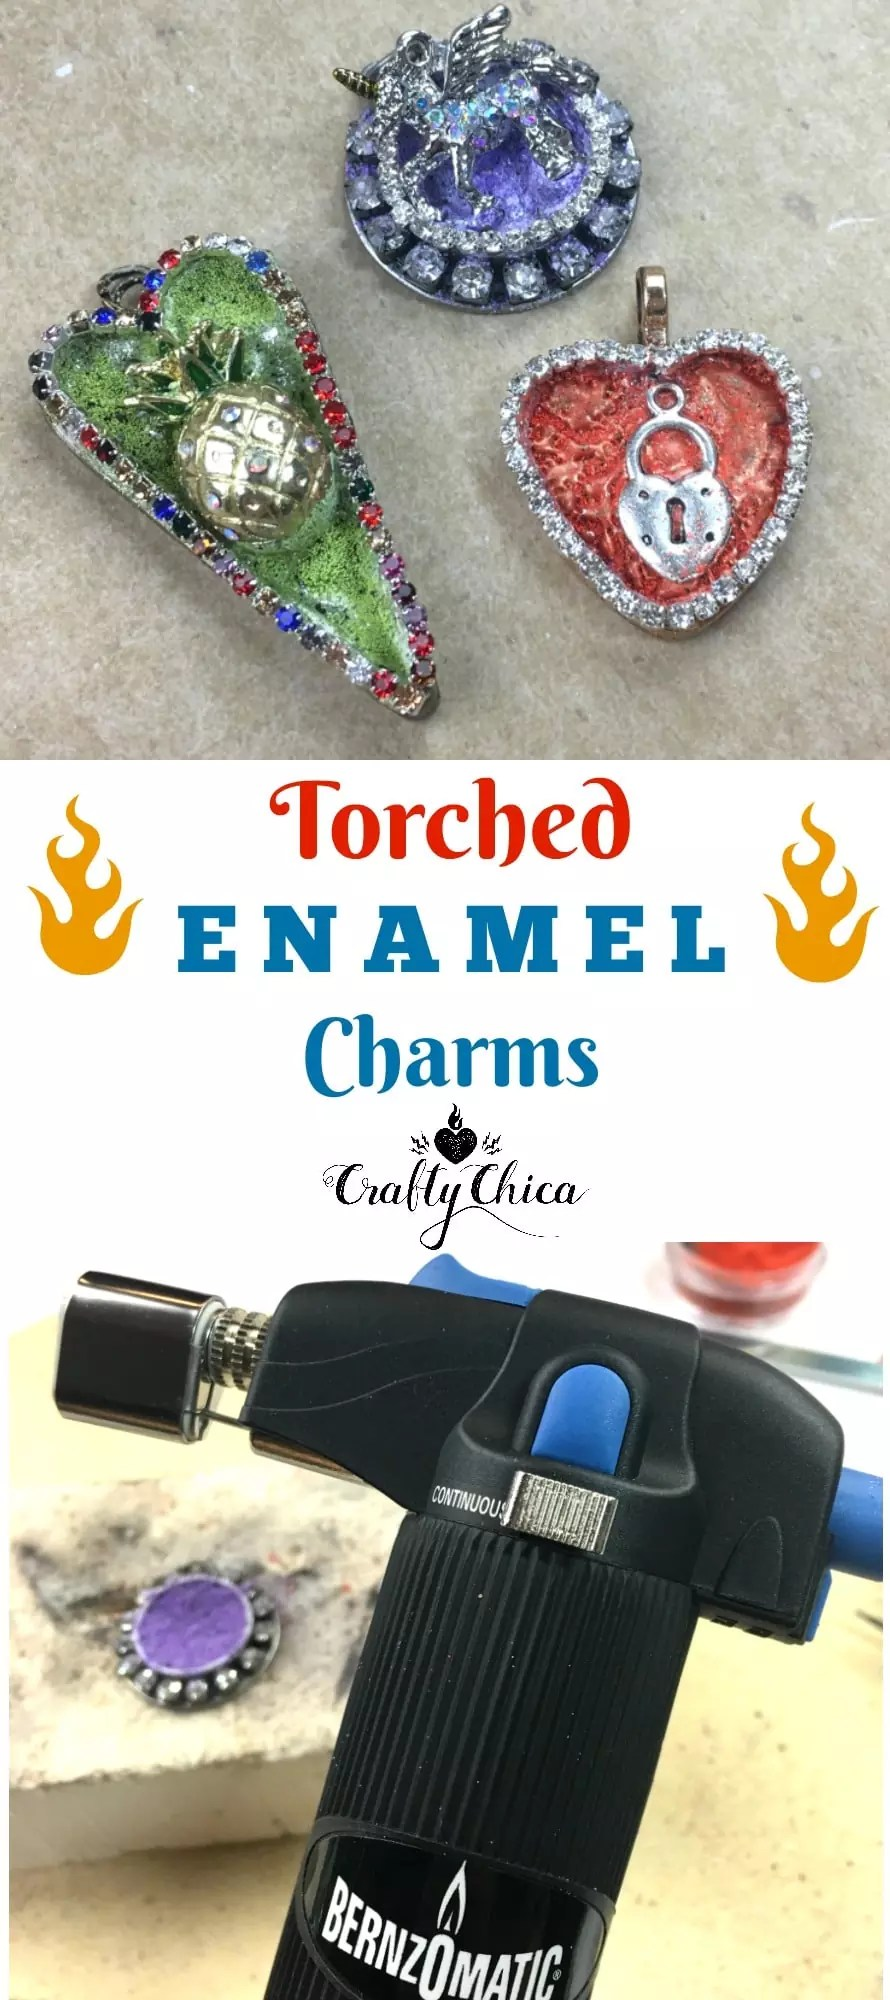 Torched enamel jewelry by CraftyChica.com